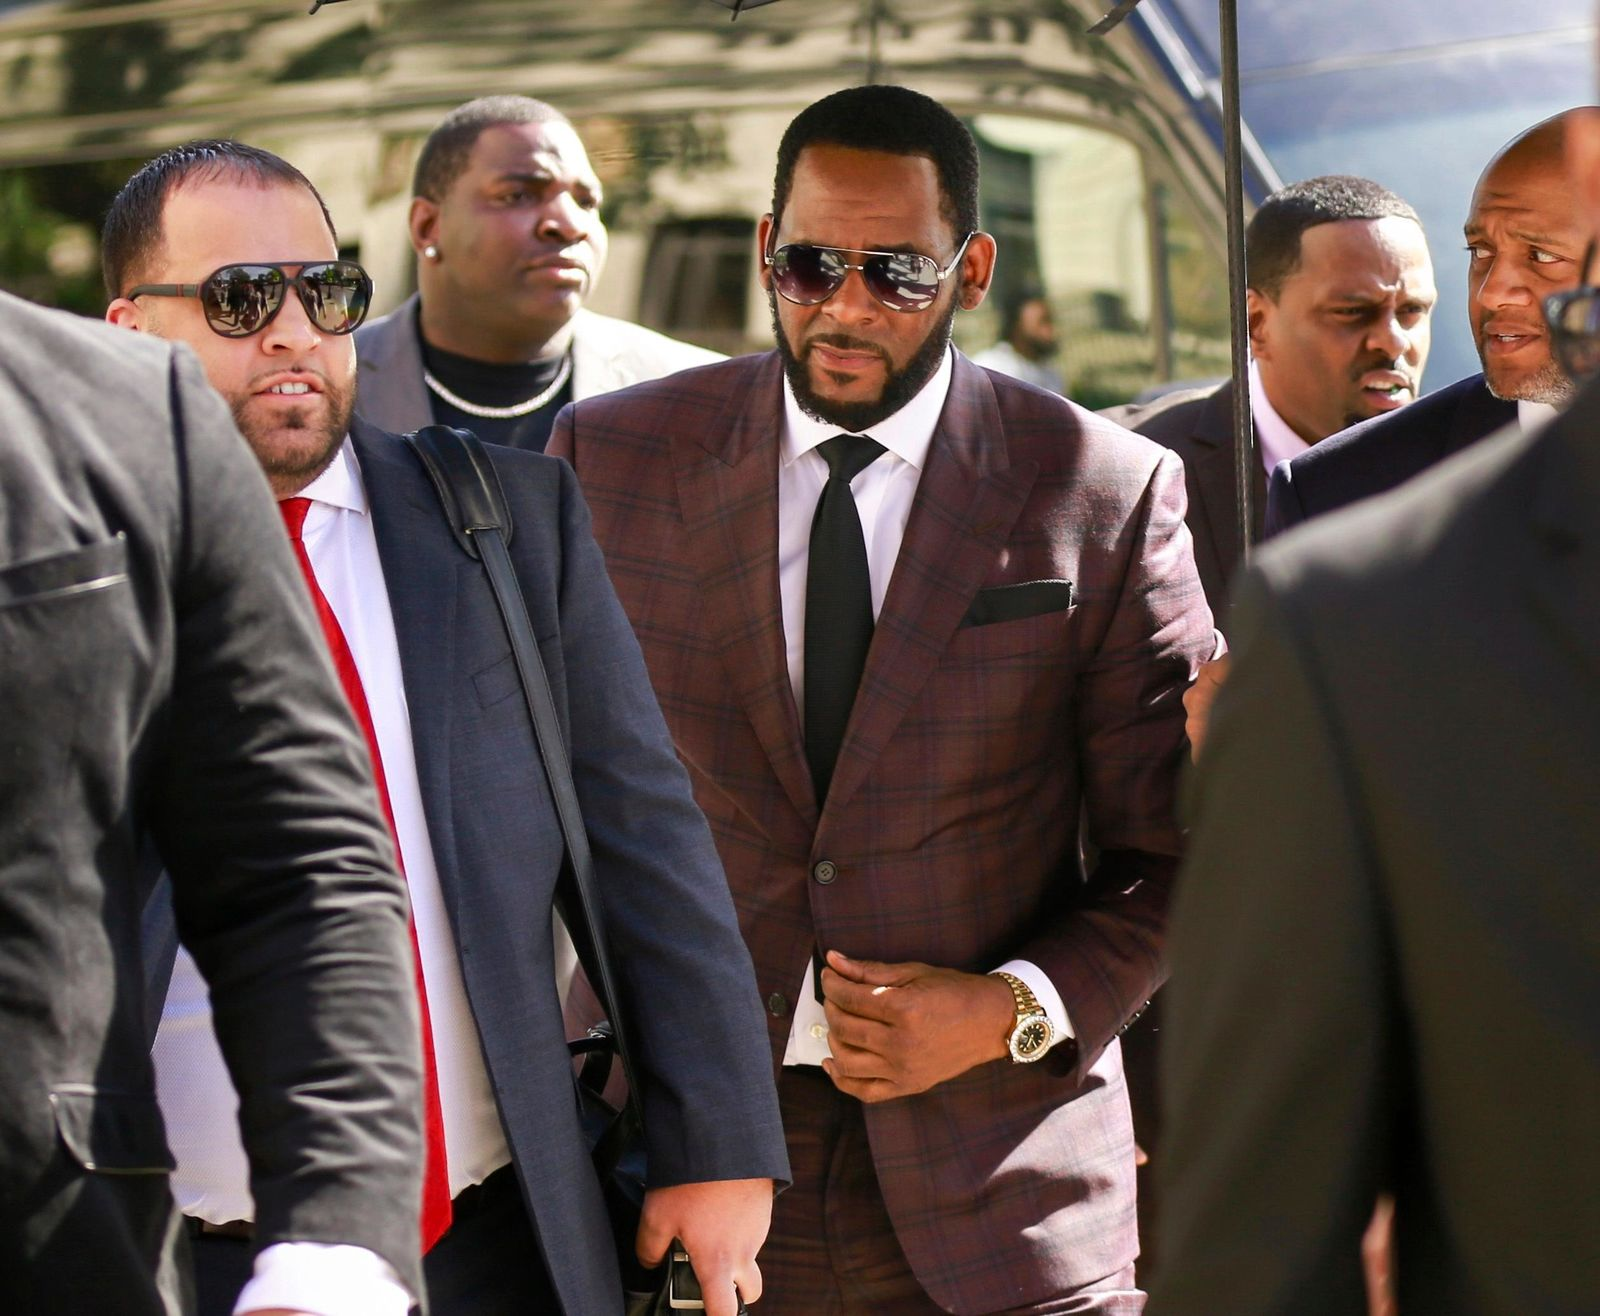 FILE - In this June 26, 2019, file photo, R&B singer R. Kelly, center, arrives at the Leighton Criminal Court building for an arraignment on sex-related felonies in Chicago. R. Kelly, already facing sexual abuse charges brought by Illinois prosecutors. (AP Photo/Amr Alfiky, File)